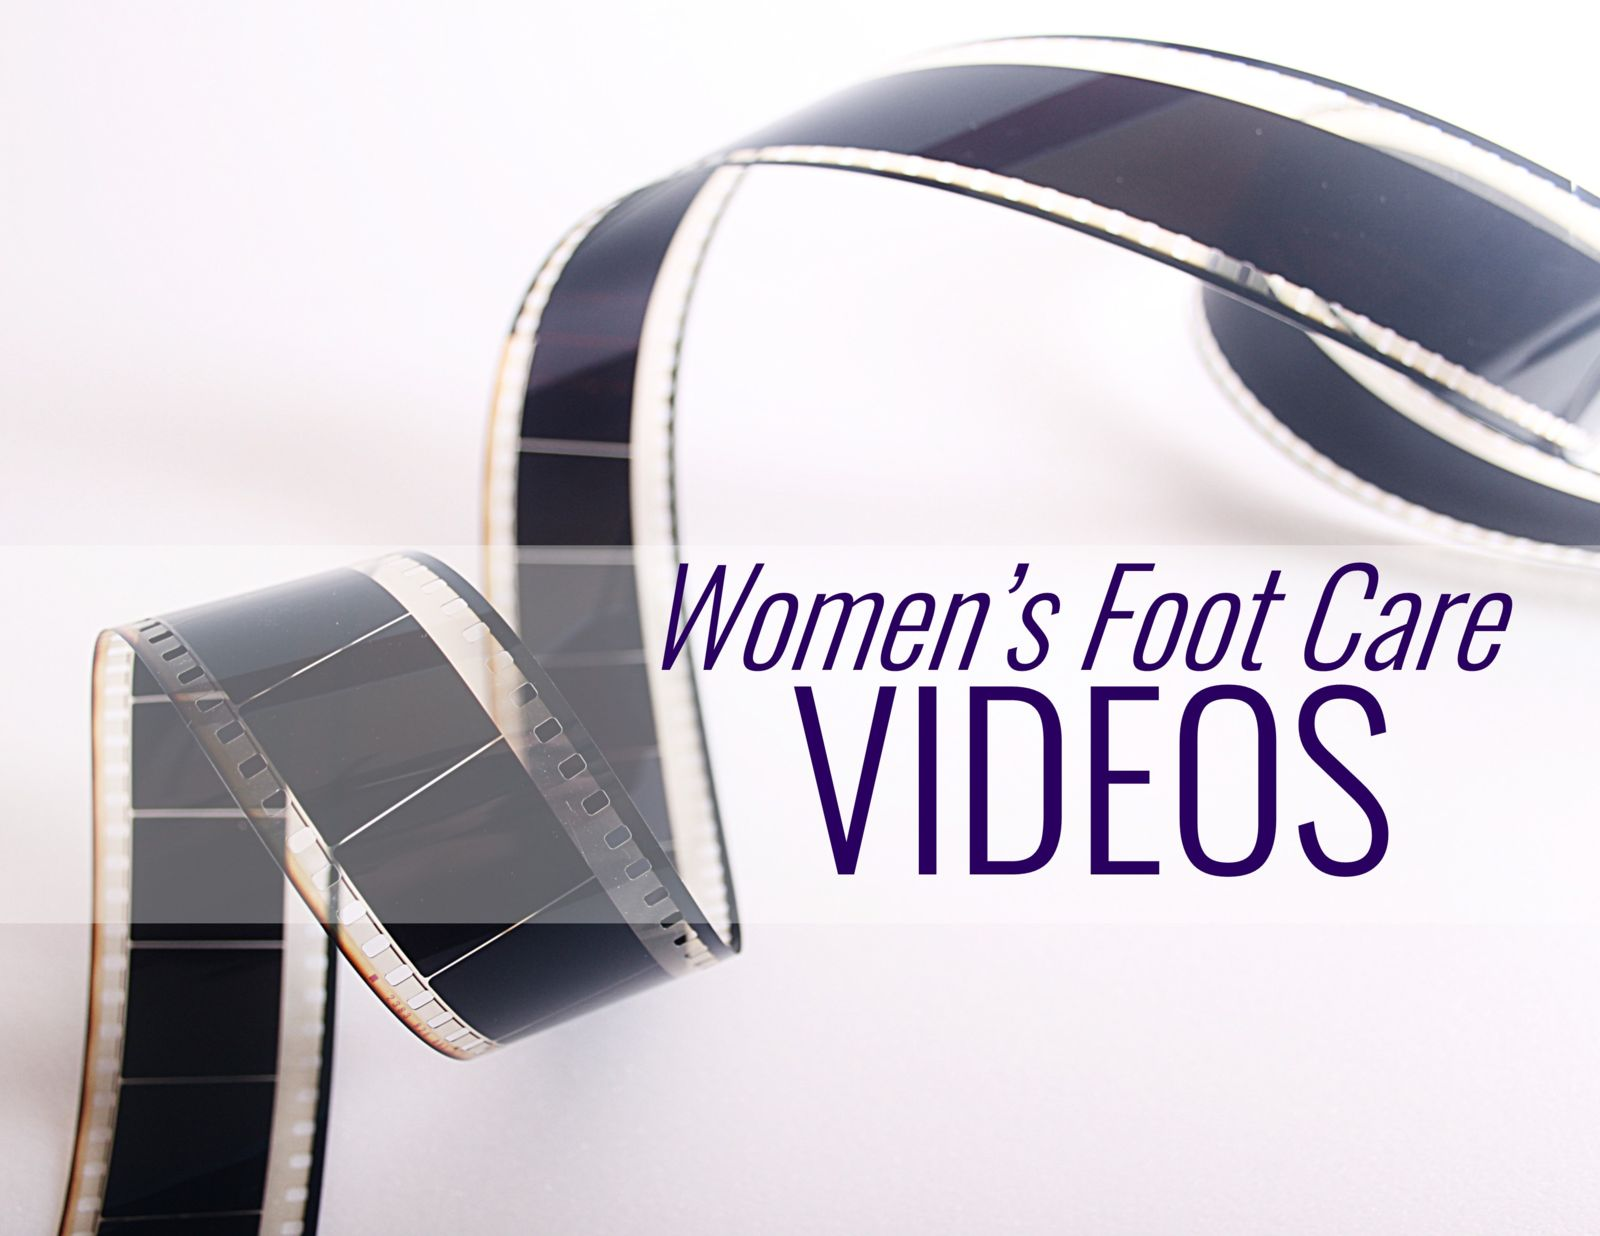 film reel with words: Women's Foot Care Videos